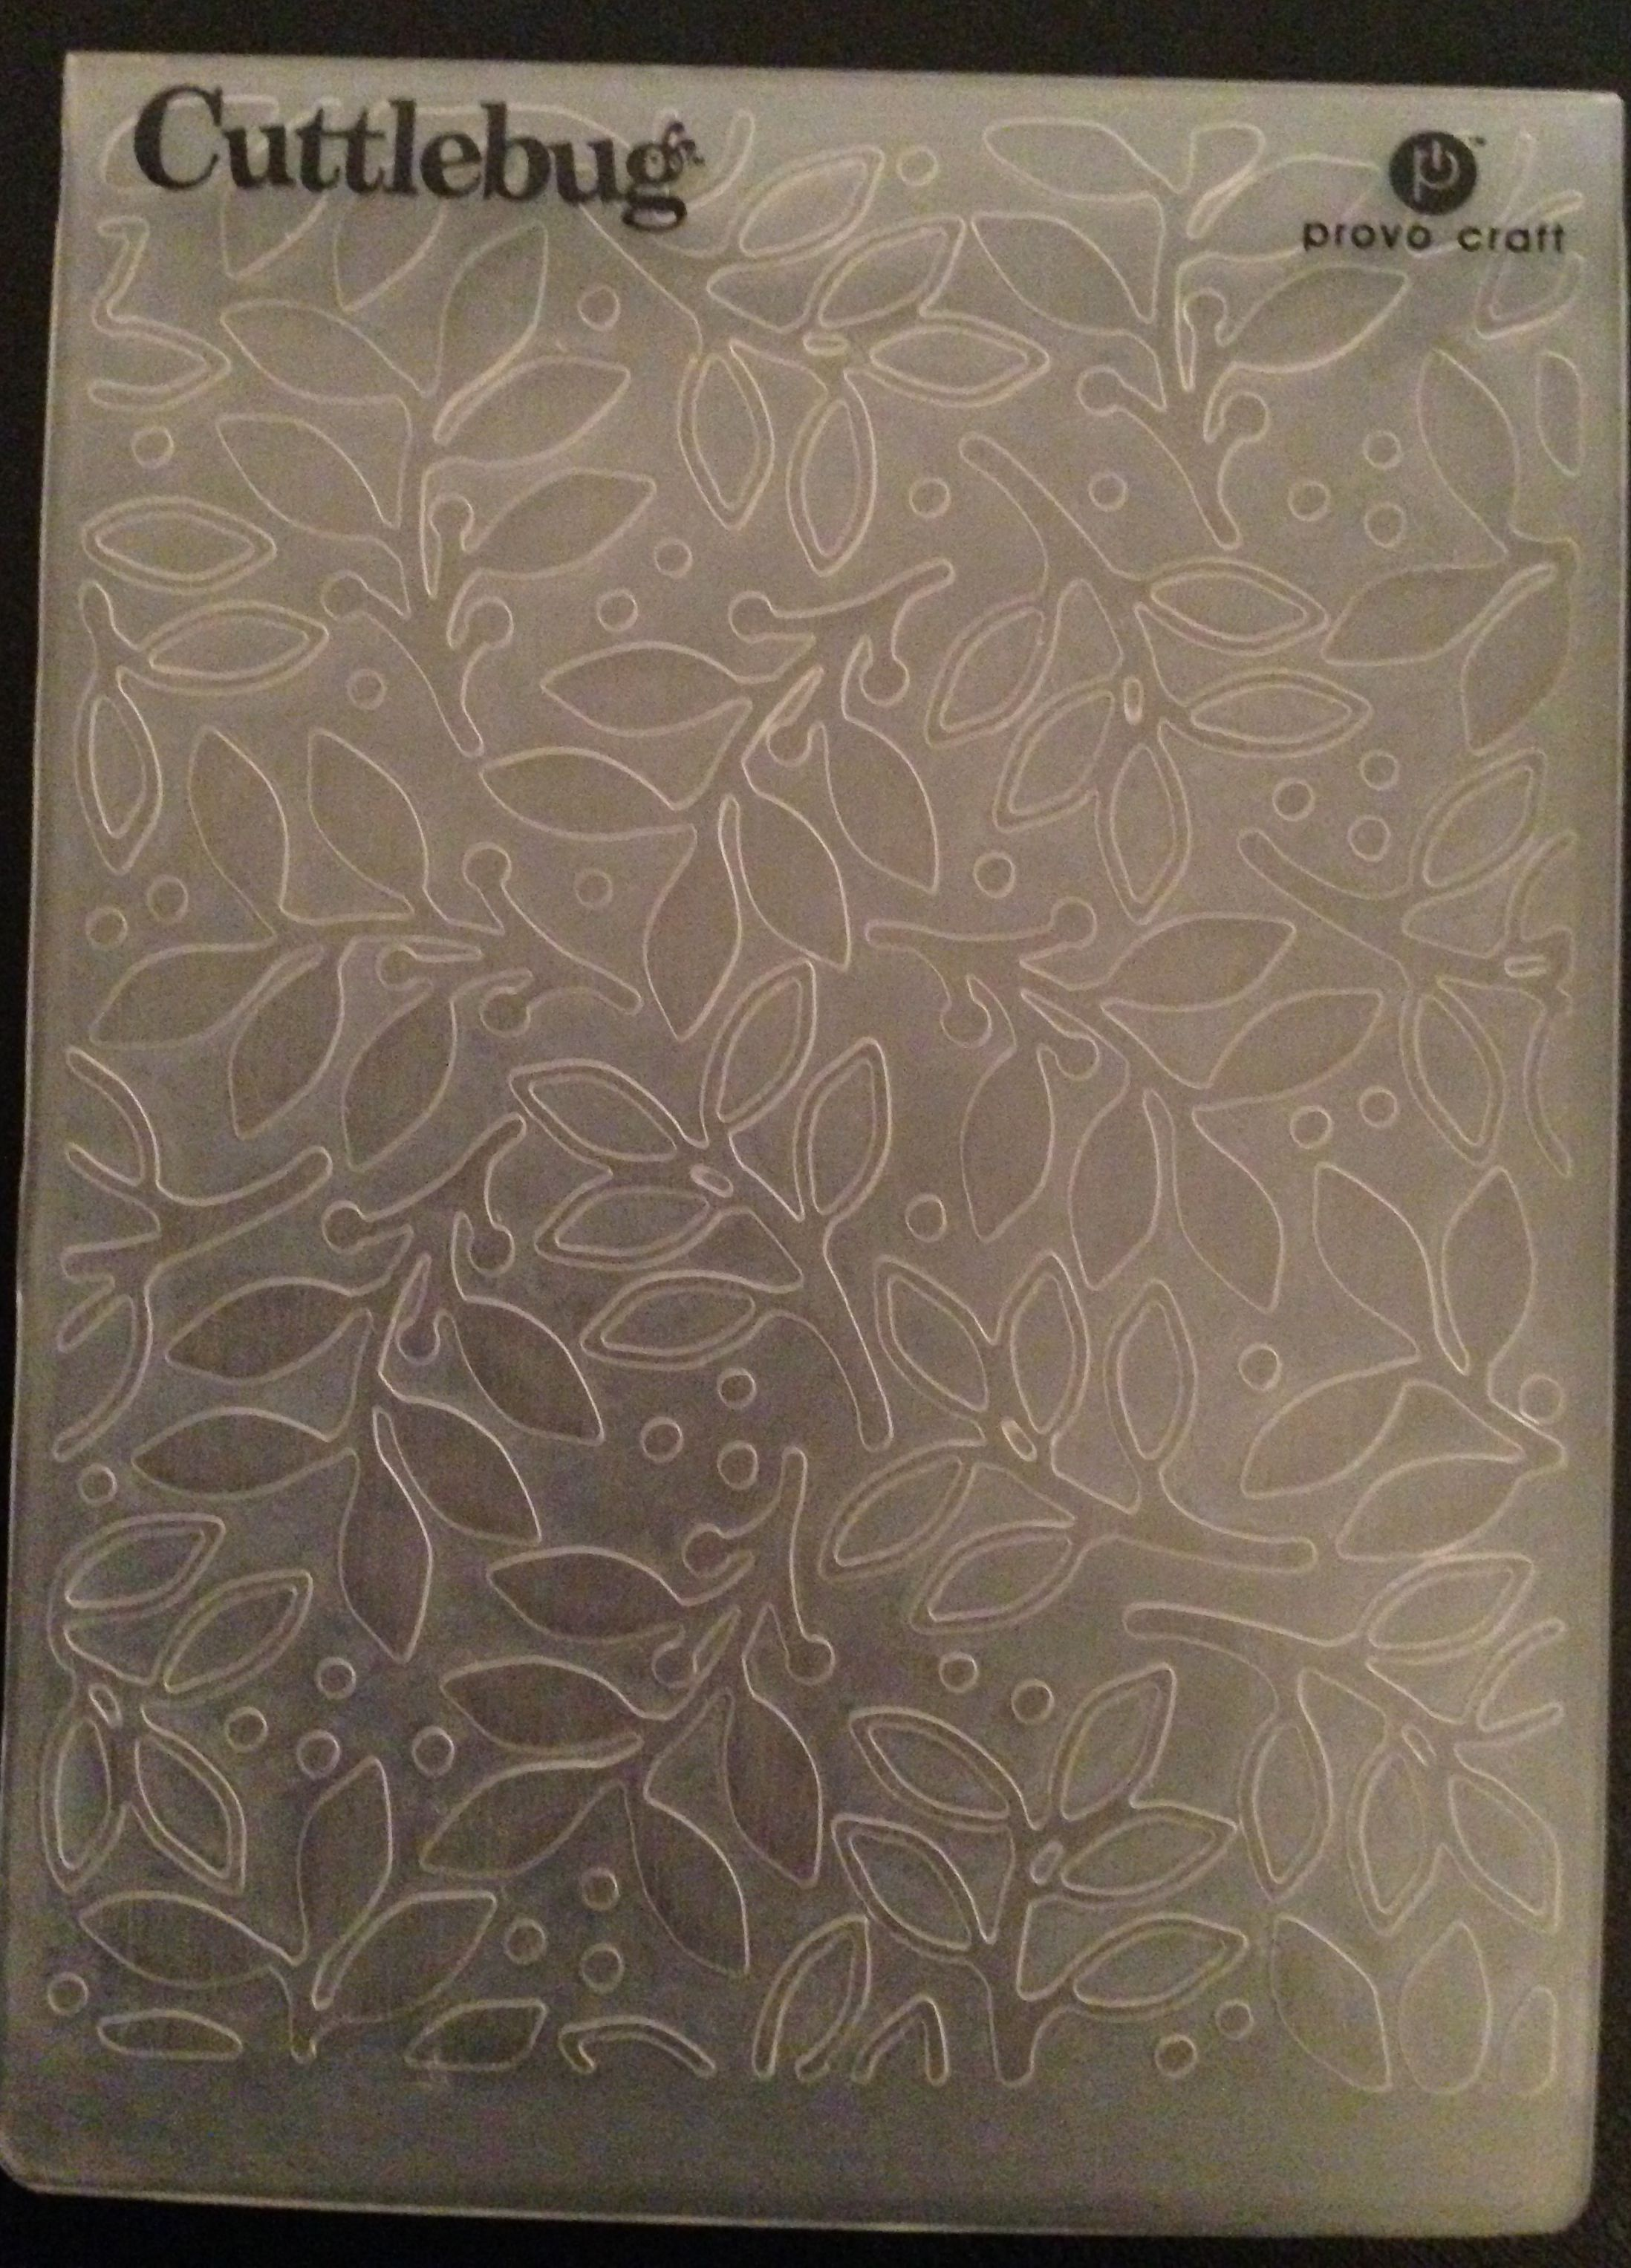 Help! Does anyone know the name of this embossing folder? Thanks.